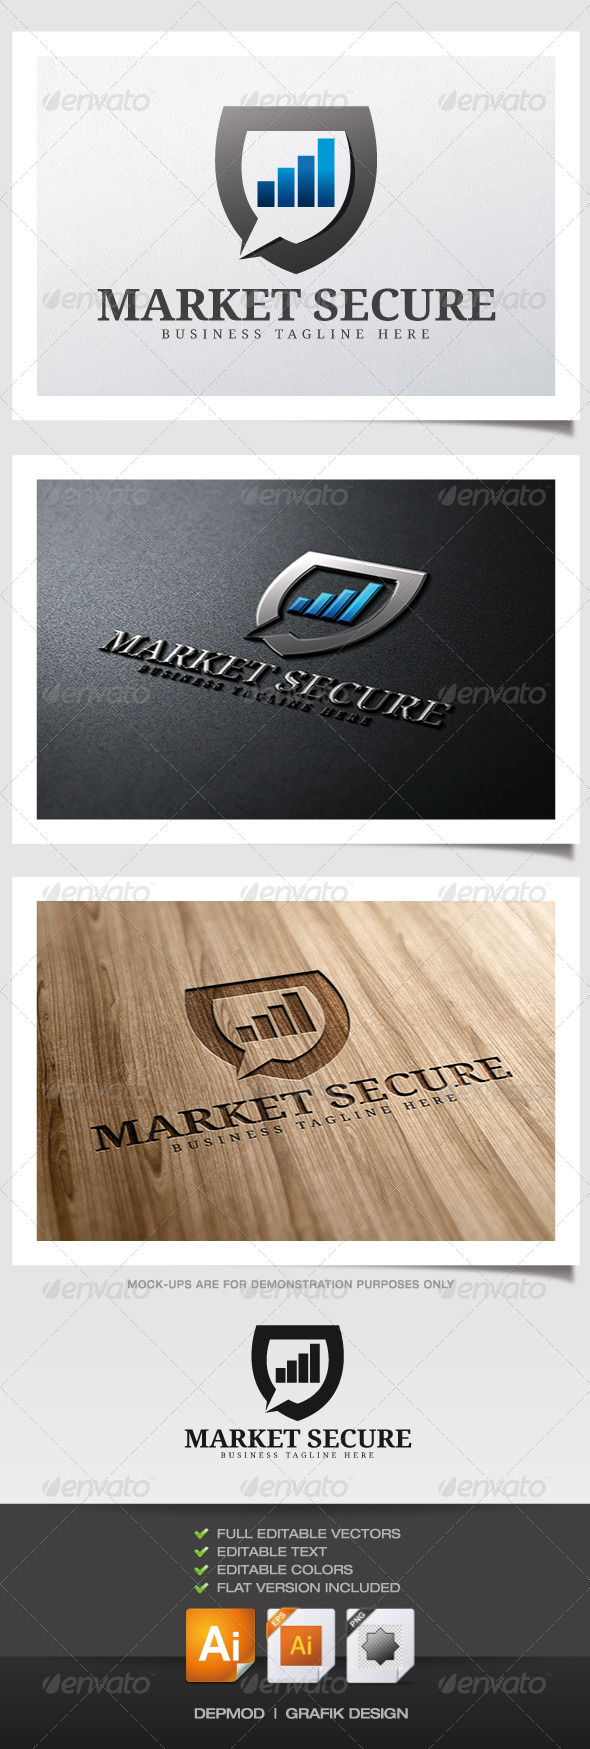 GraphicRiver Market Secure Logo 6057103